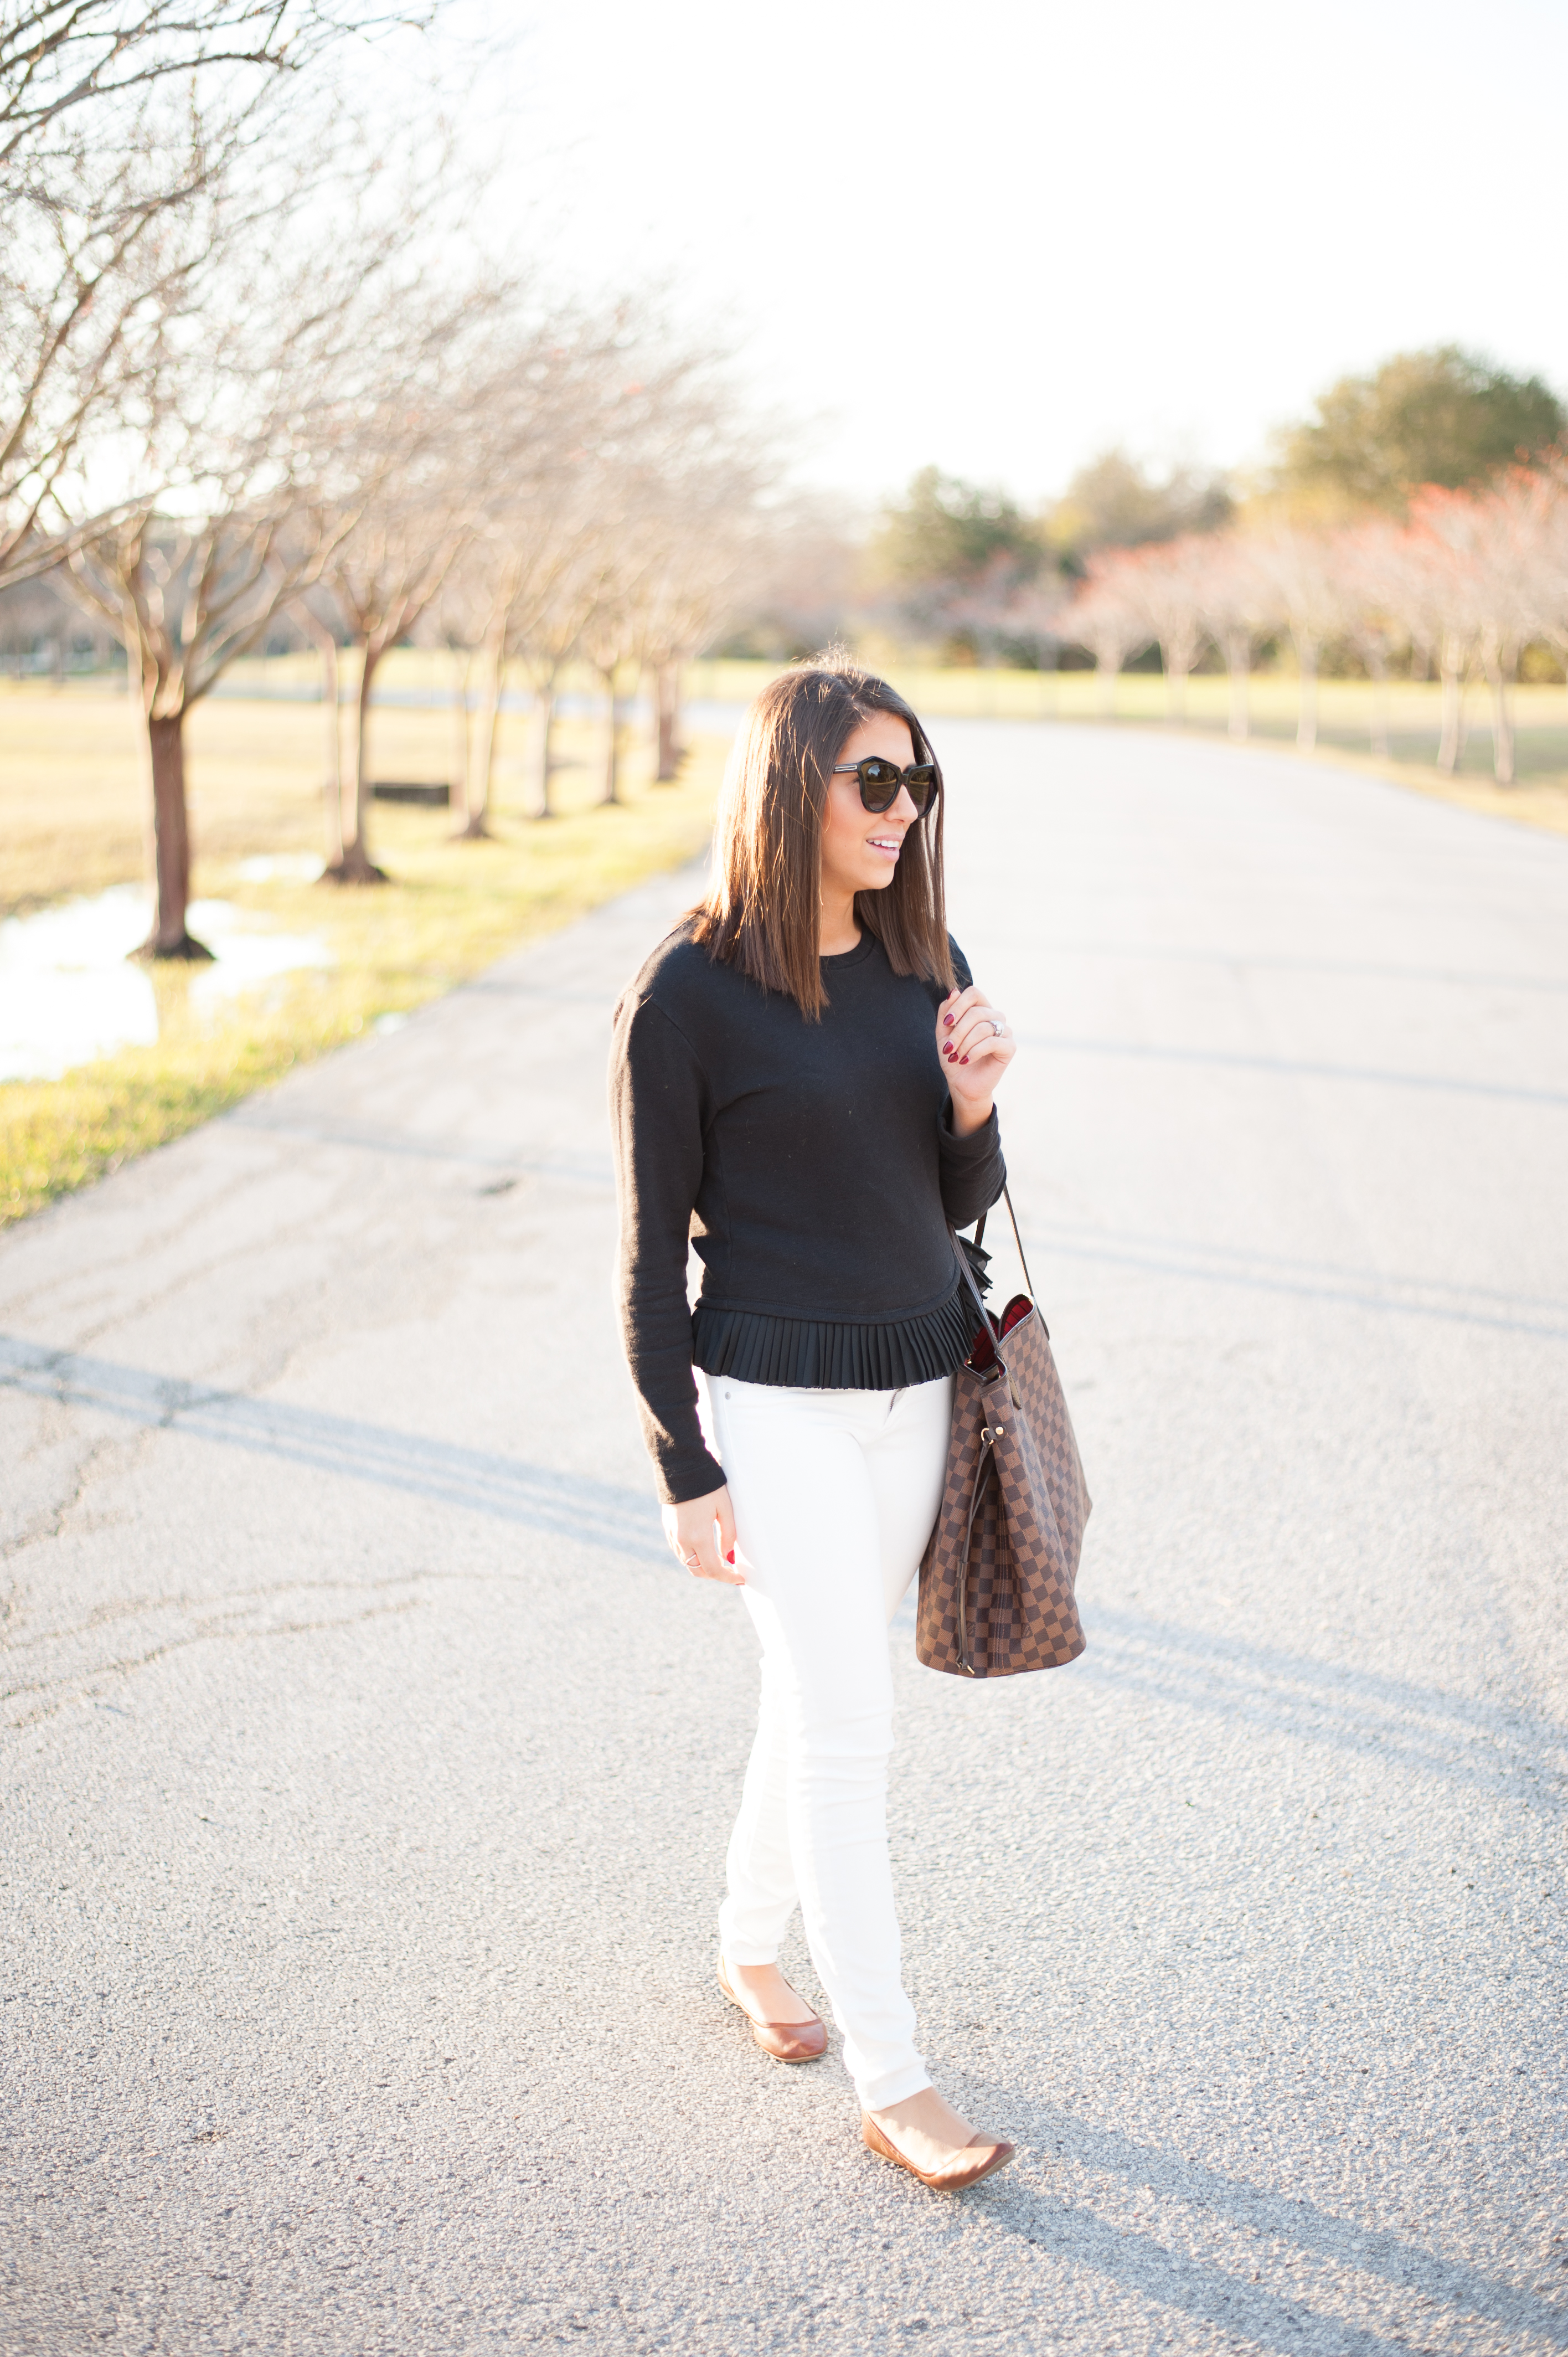 dress_up_buttercup_dede_raad_fashion_blogger_houston (8 of 8)